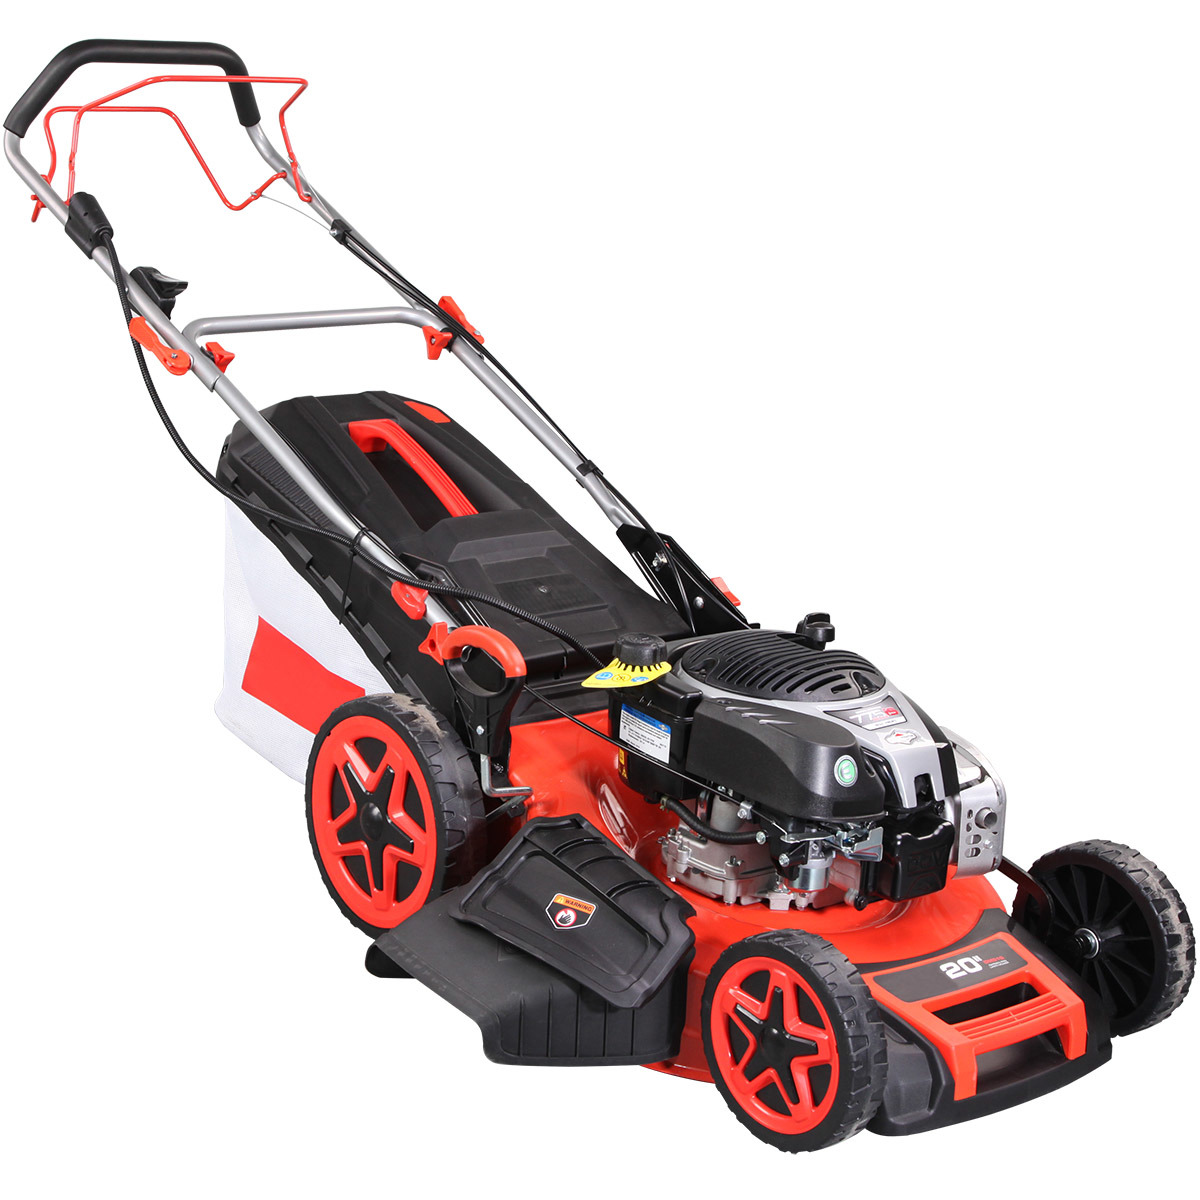 """Newest 20"""" 4 in 1 Professional Electric Start Self-Propelled Lawn Mower"""